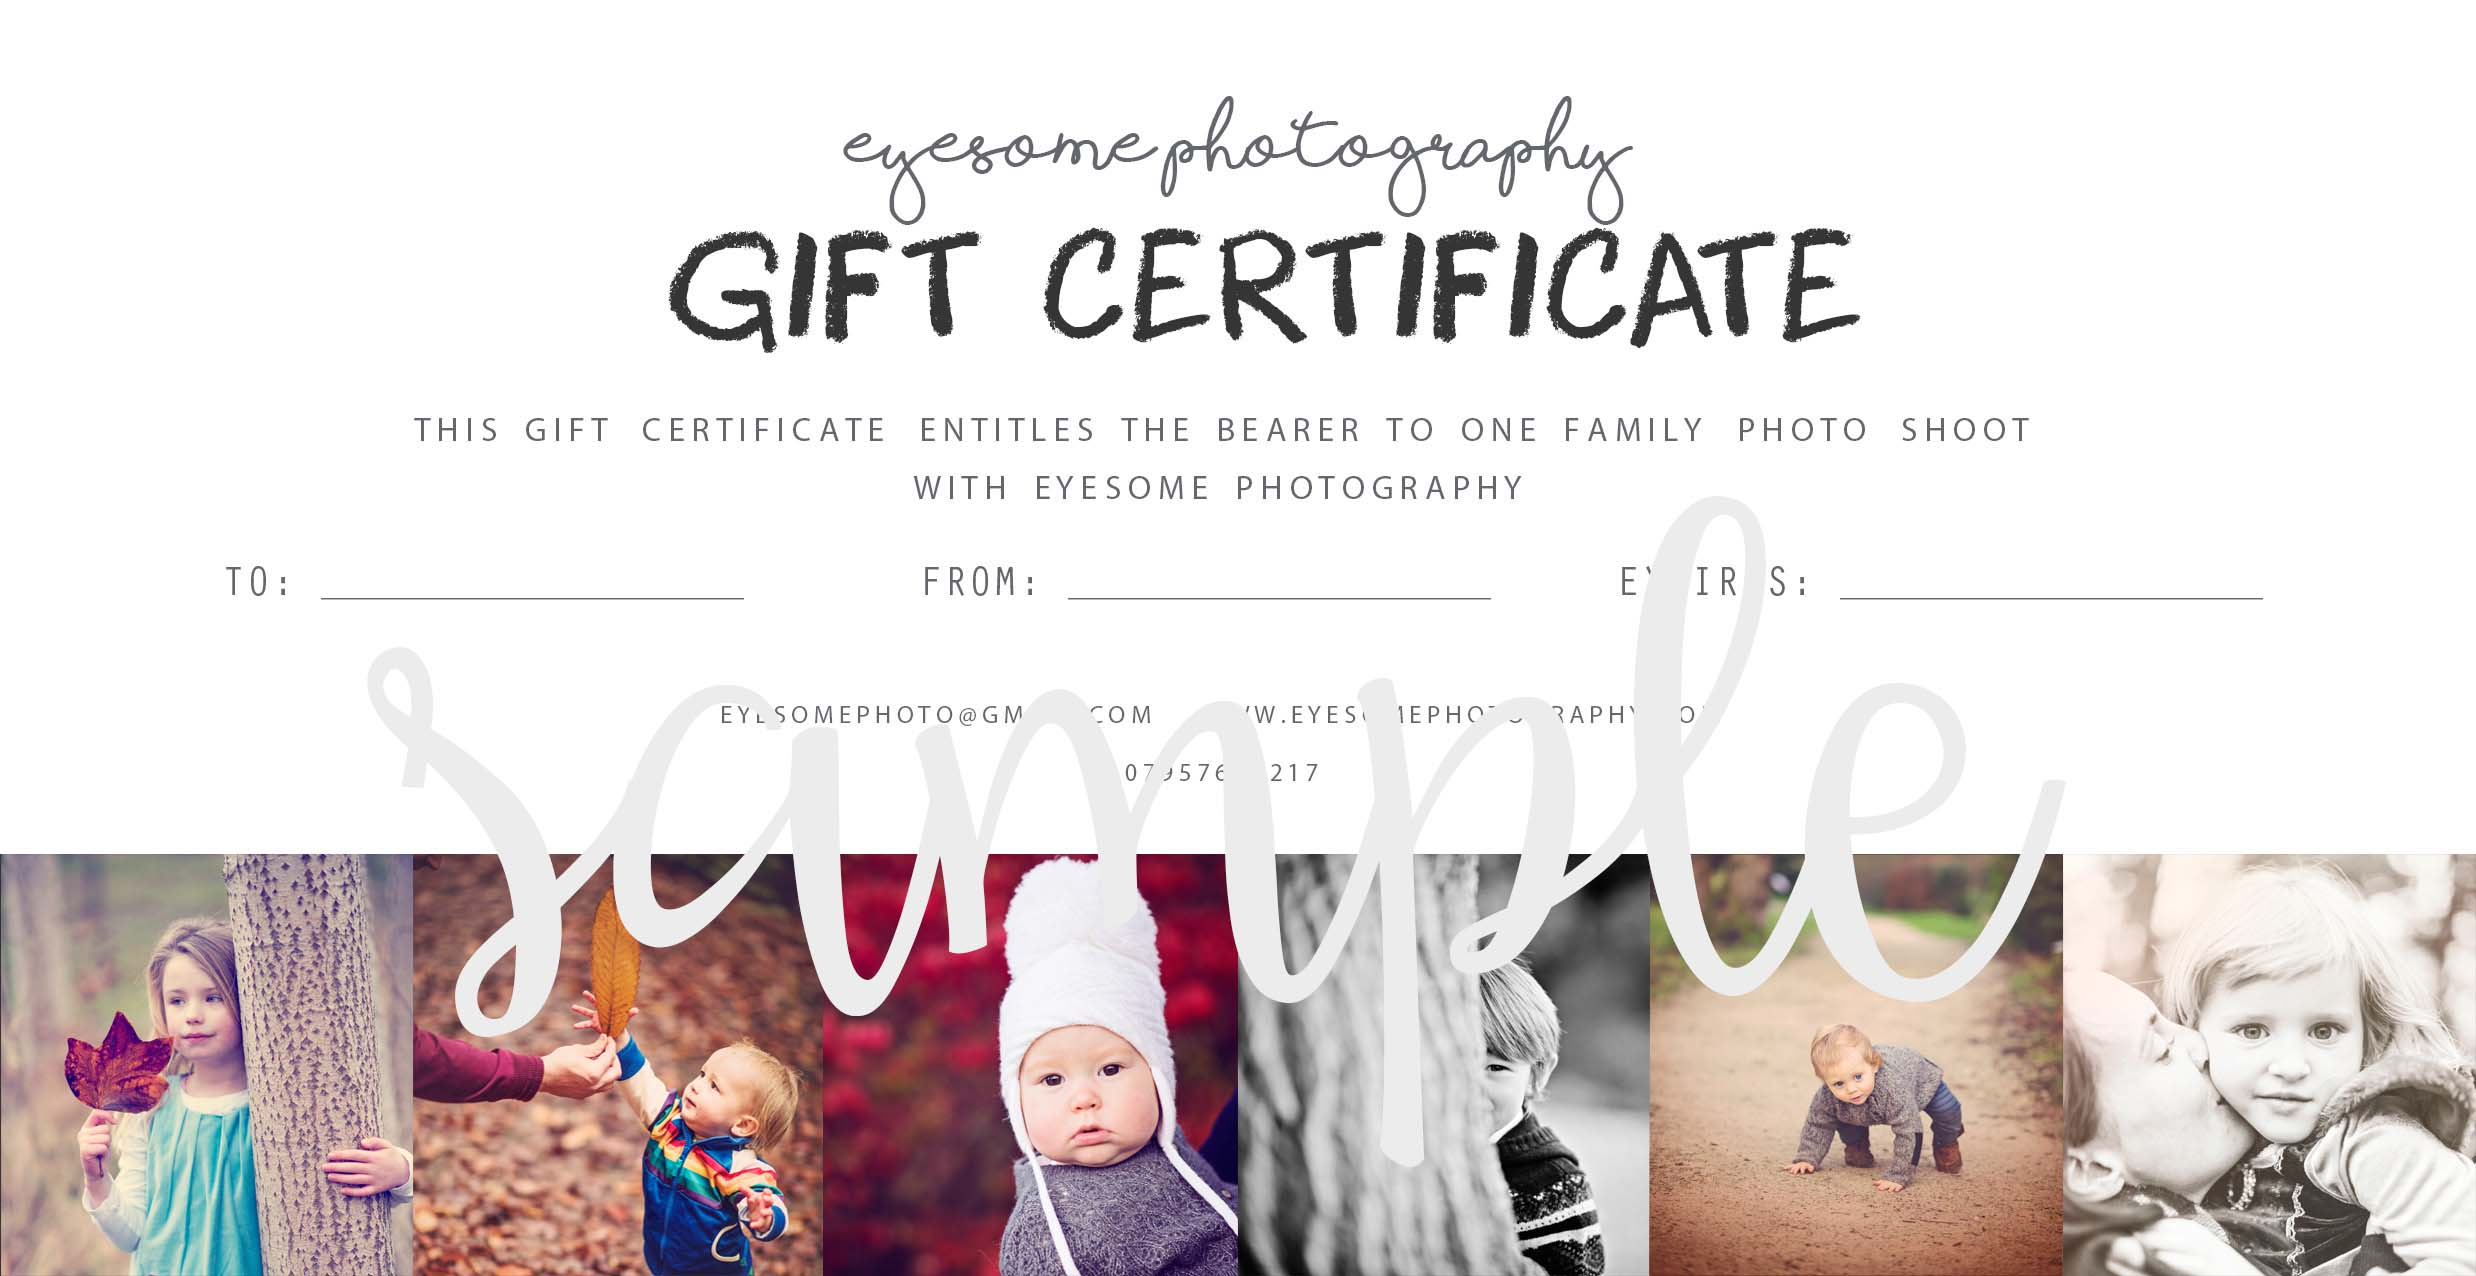 A valid gift voucher must be signed by eyesome photography.